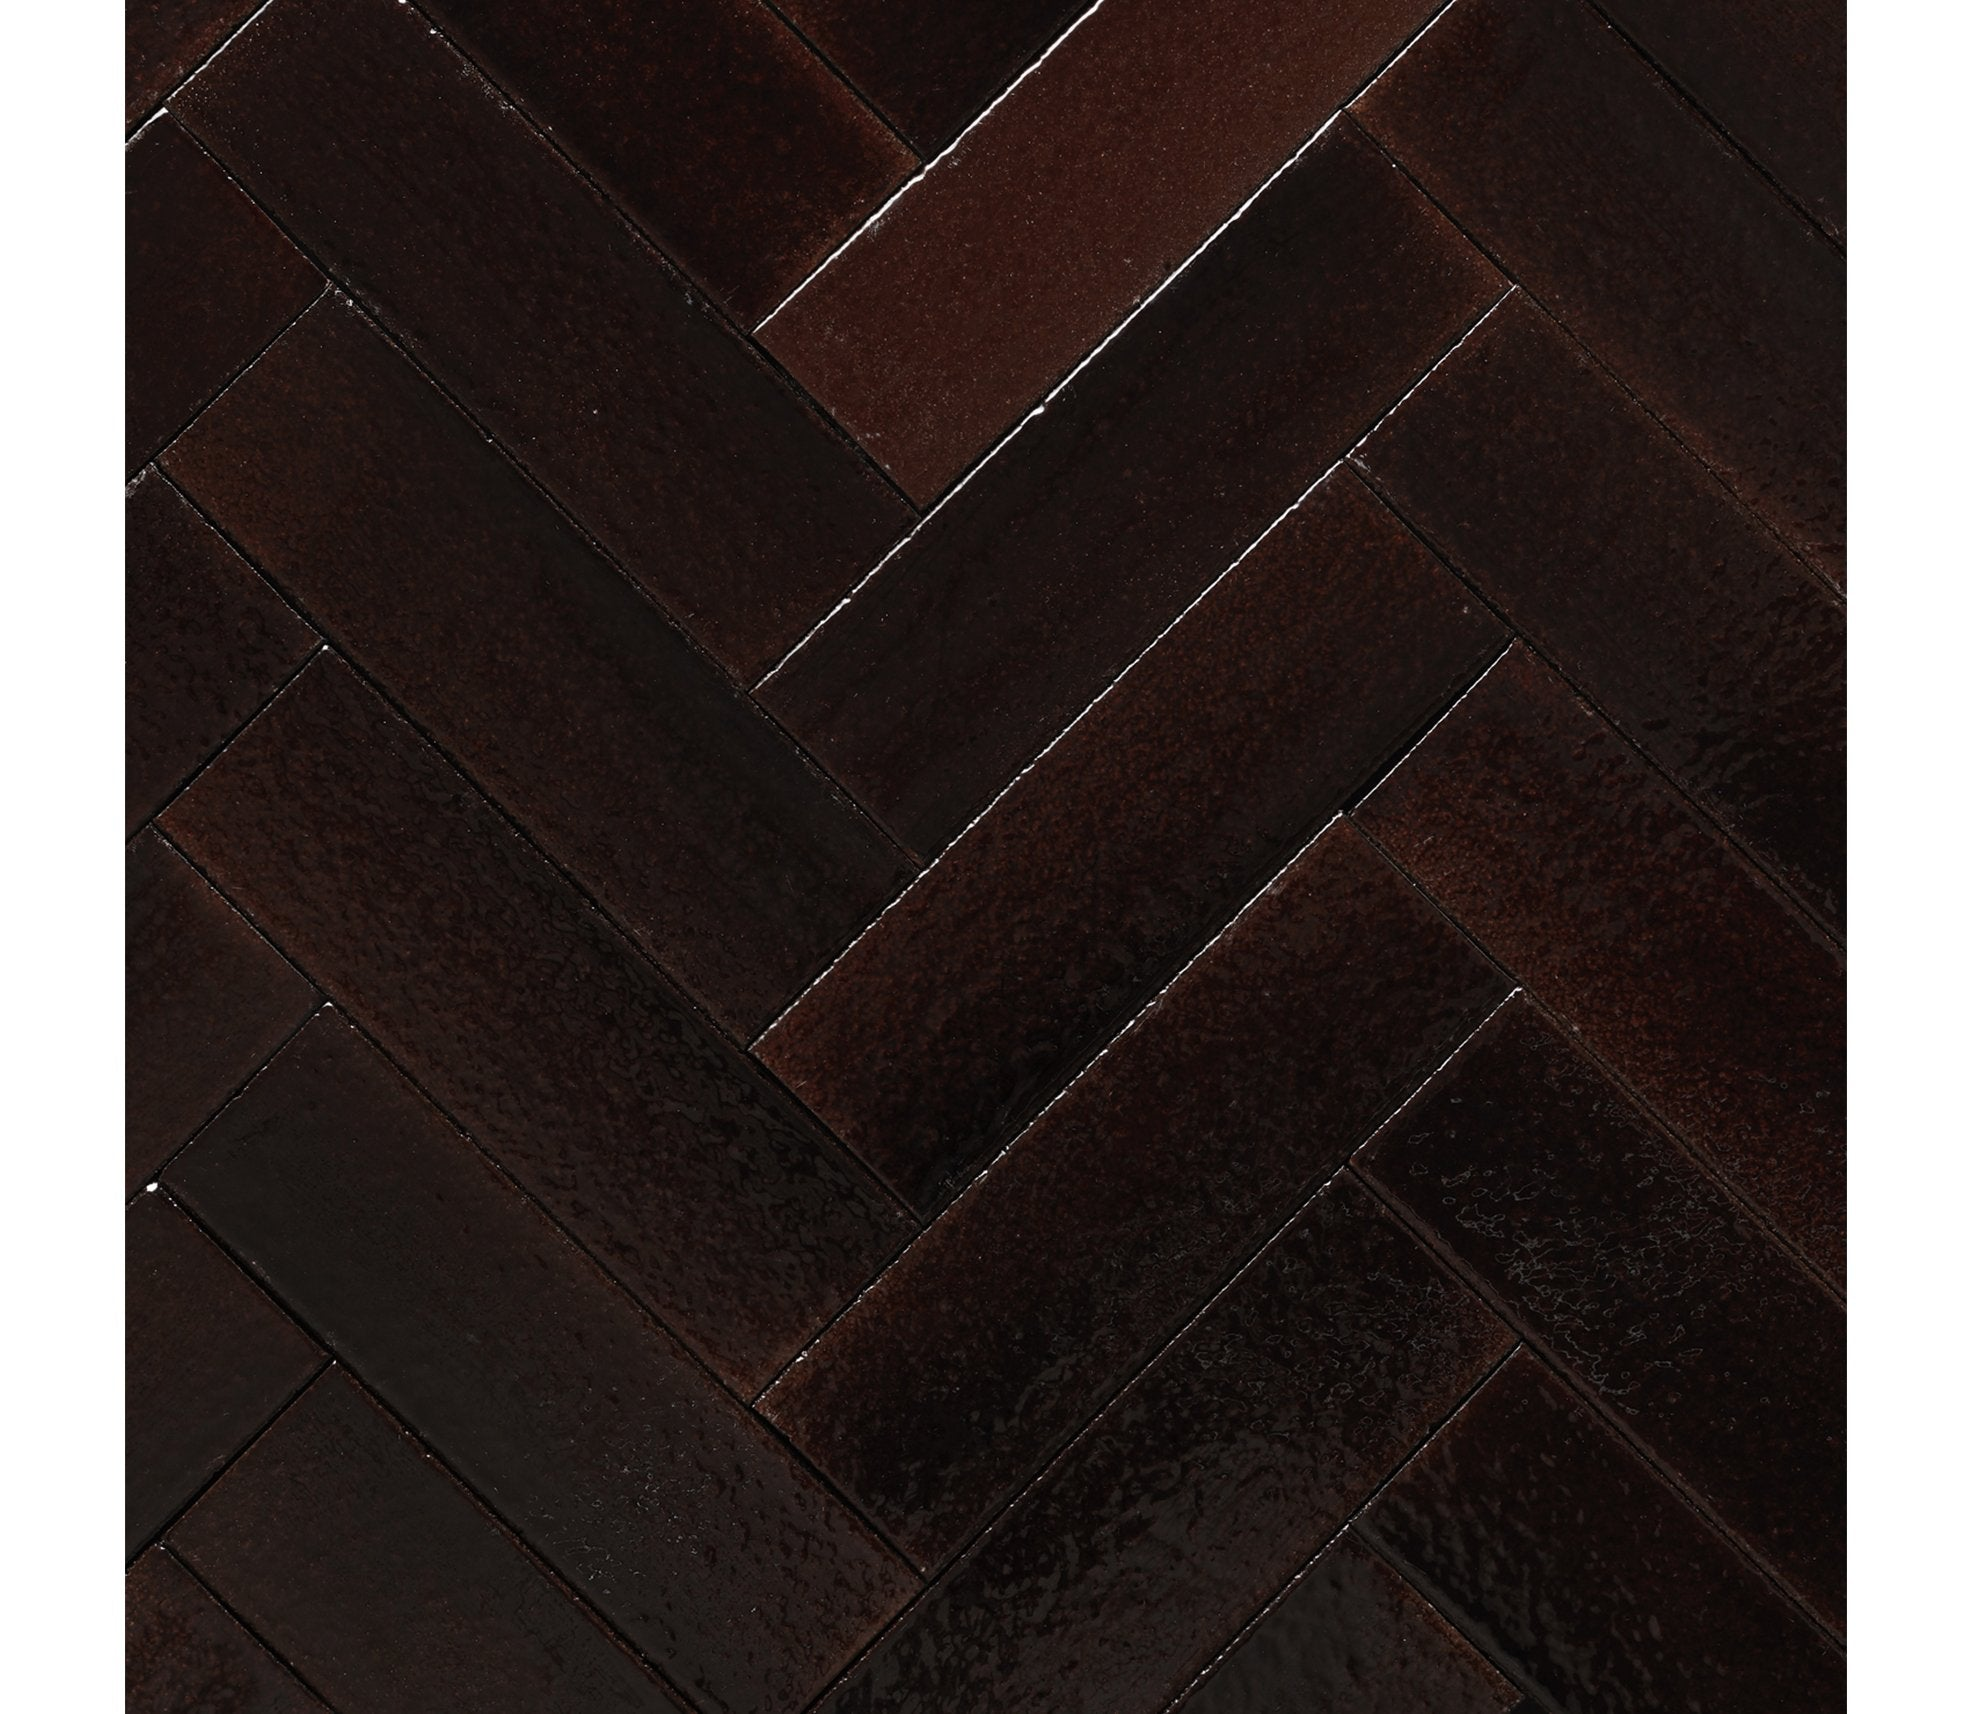 Terra Firma Glazed Bricks Product Image 55